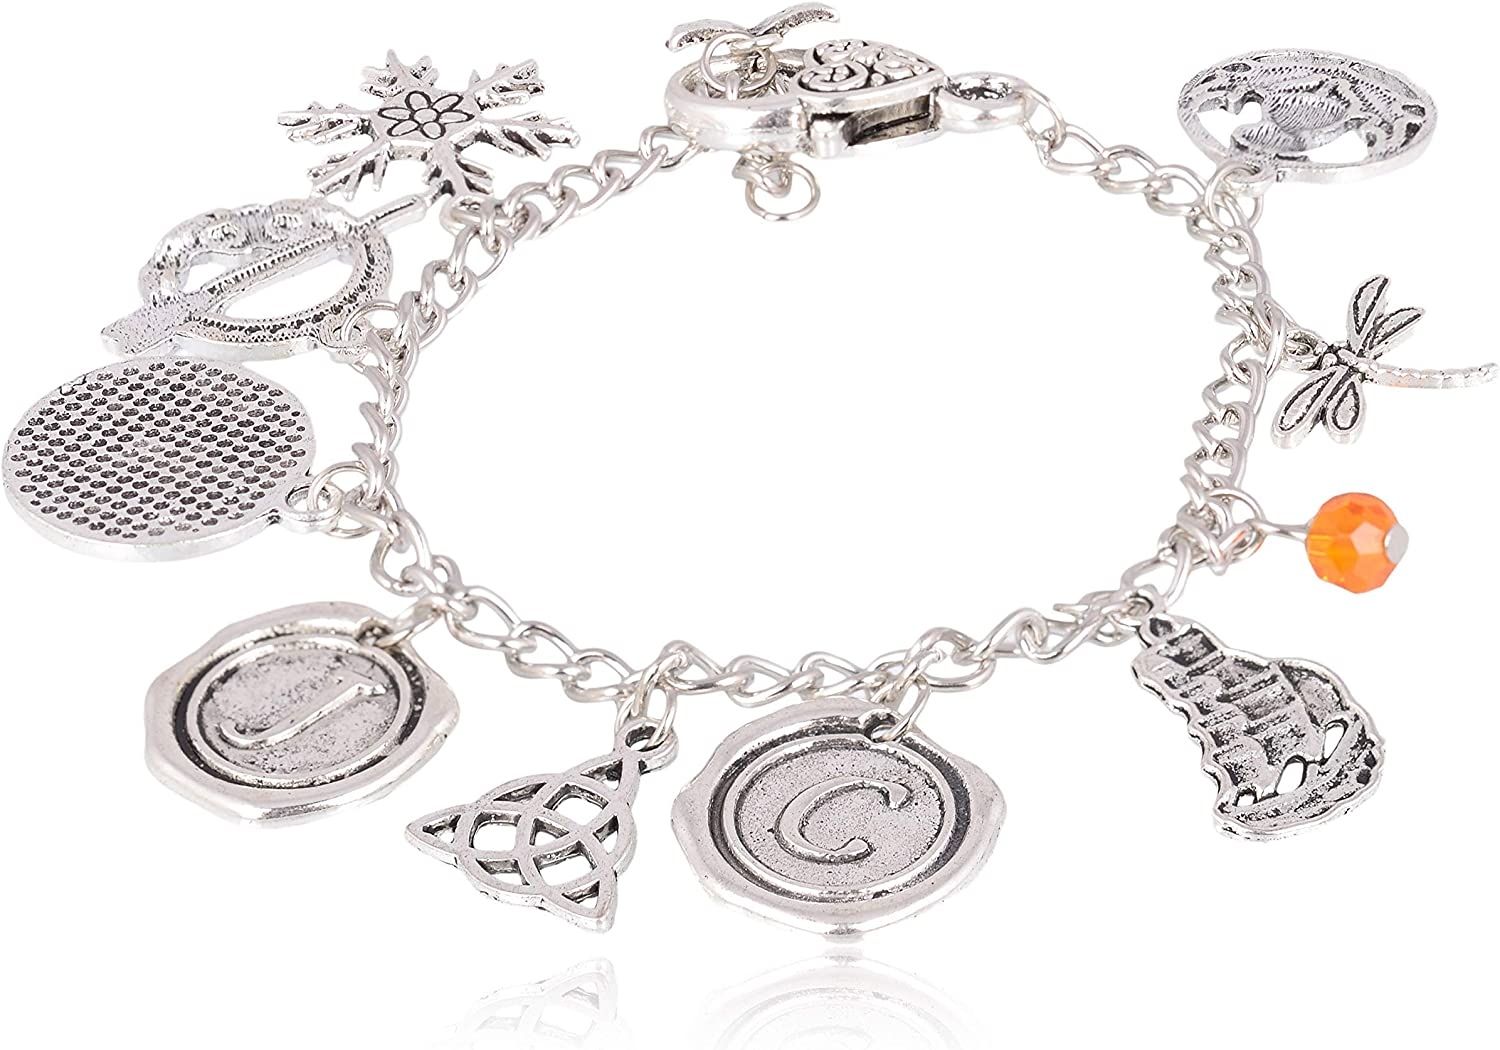 Accessorisingg Fan Collection of Outlander Inspired Fashion Jewlery 4 Varients